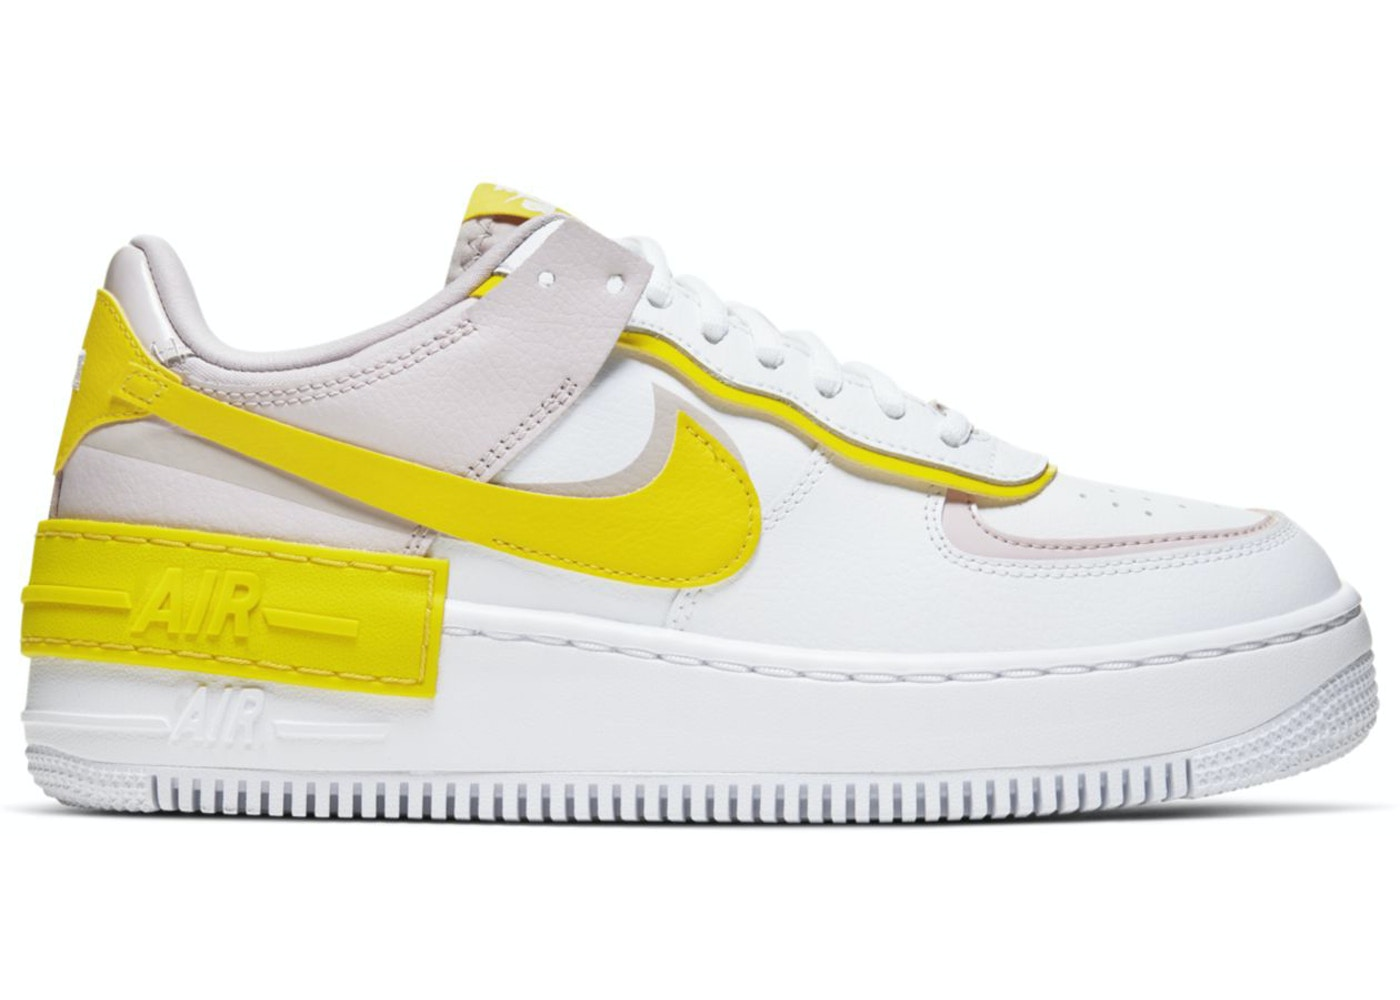 Nike Air Force 1 Shadow White Barely Rose W Cj1641 102 The air force 1 lv8 takes the iconic sneaker and mixes and matches materials for standout results. nike air force 1 shadow white barely rose w